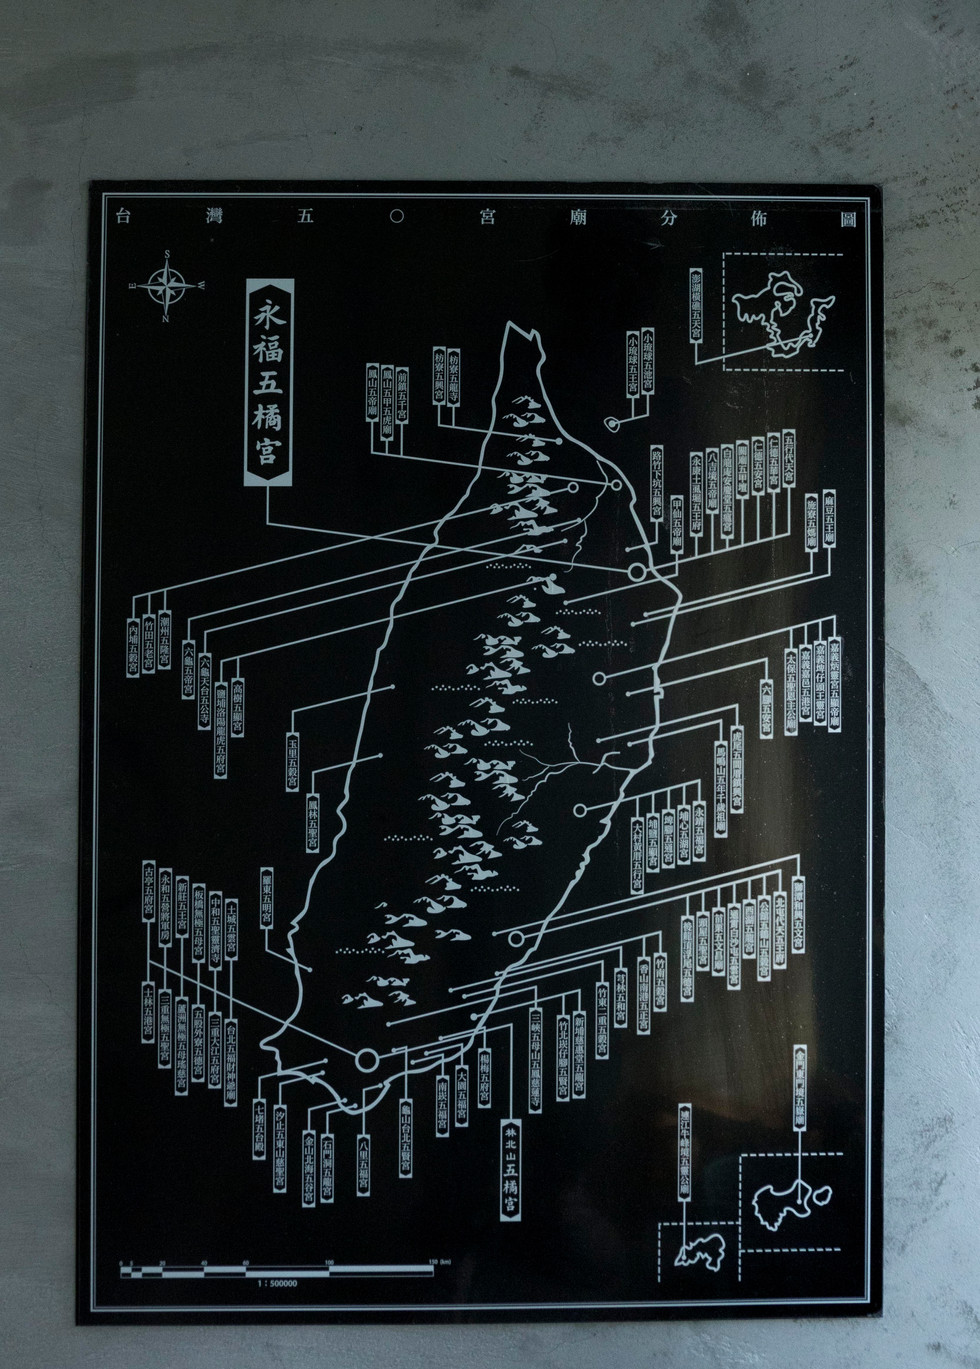 全台五O宮廟分佈圖/Wu O Temple Map of Taiwan